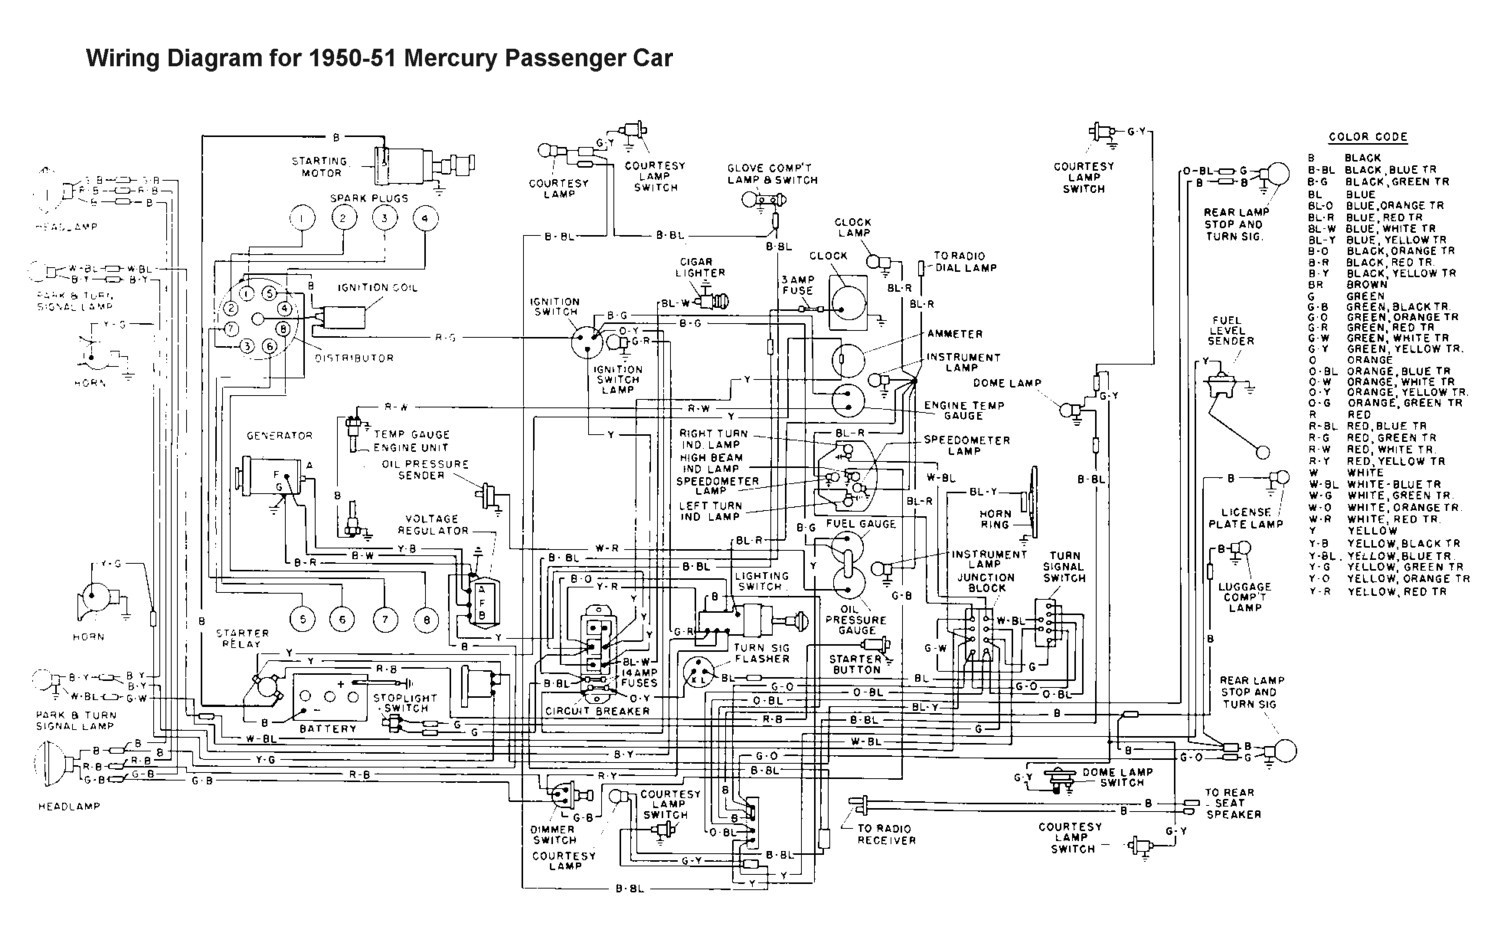 WRG-0626] Nissan Engine Wiring Diagram Free Picture Schematic on